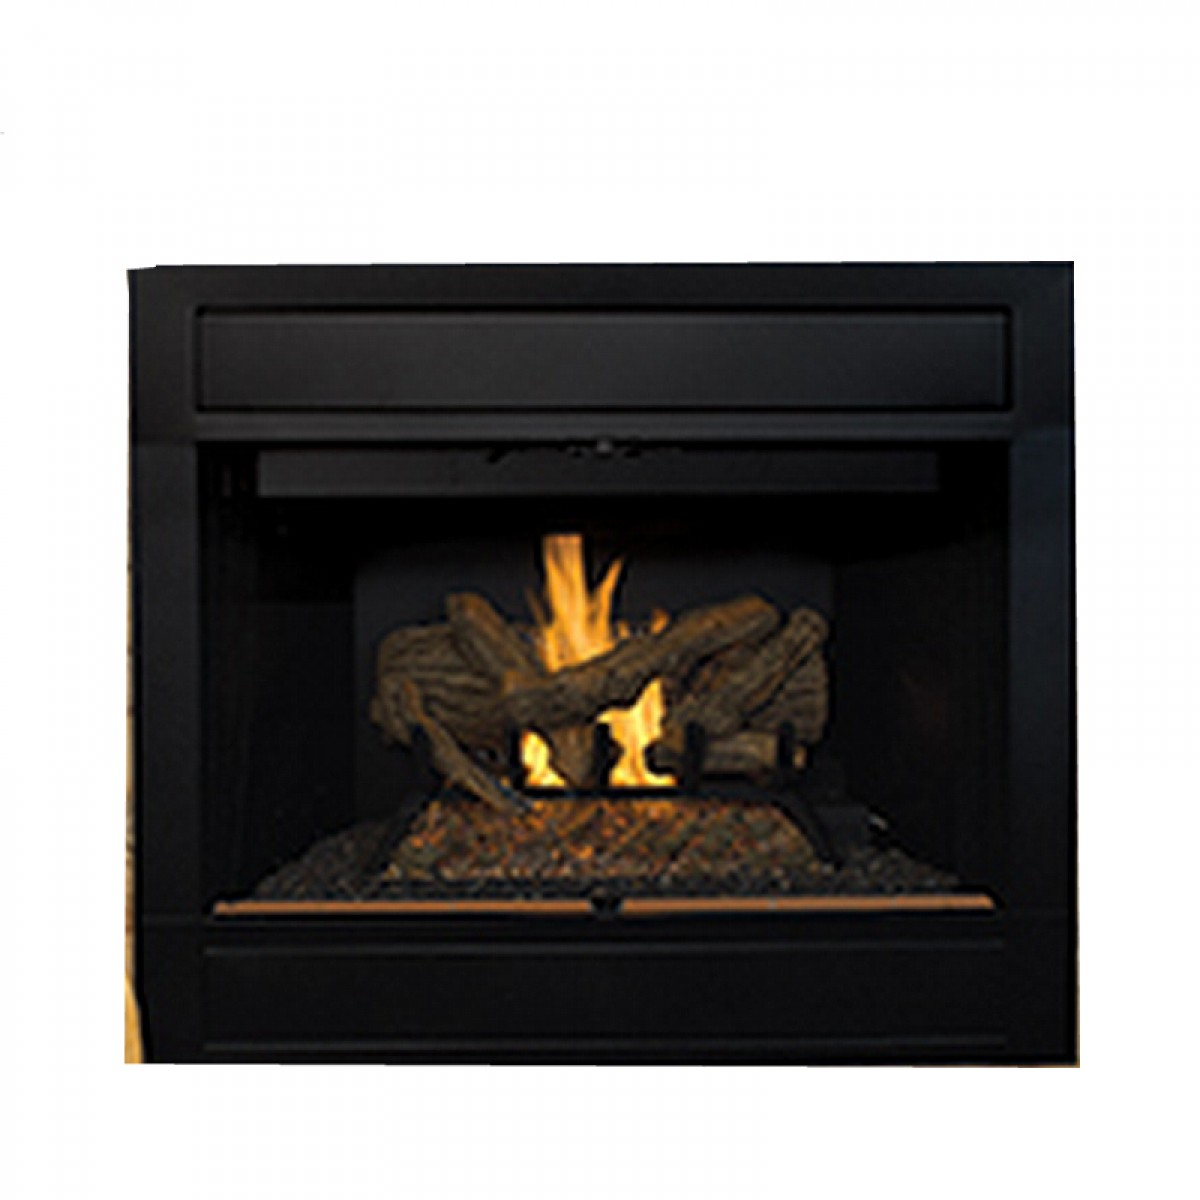 reveal gas products b vent fireplace majestic